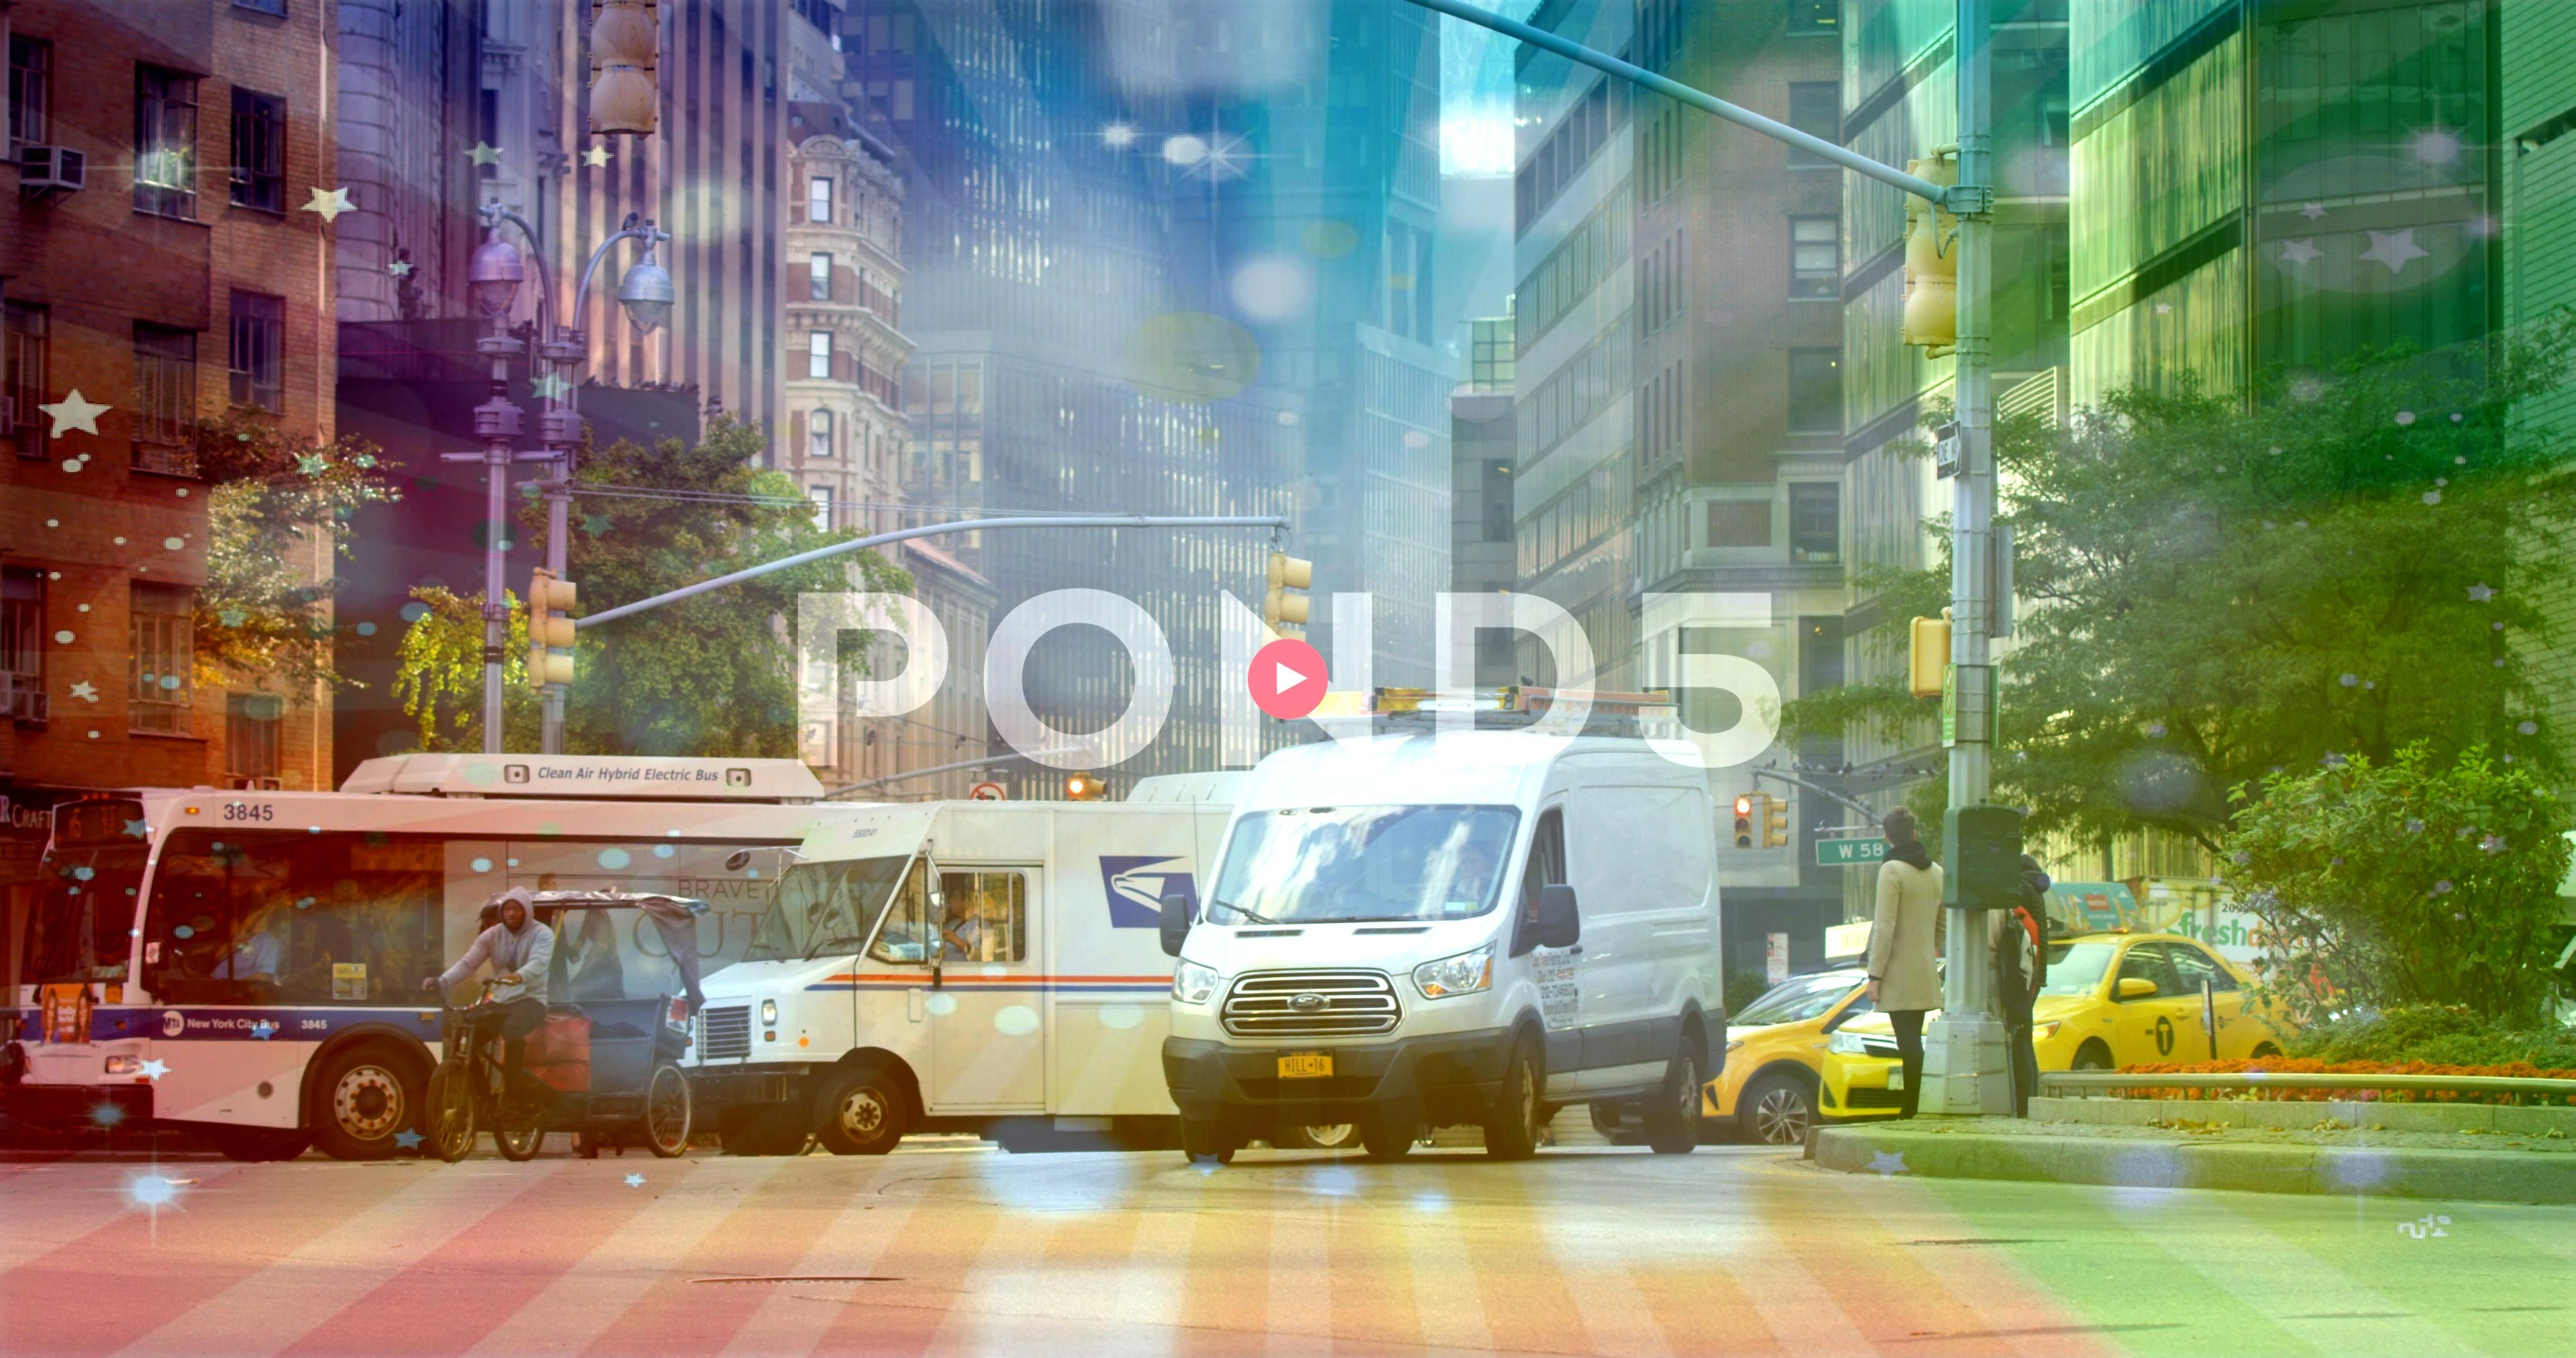 Traffic On An Iconic New York Road In New York City Pedestrians Crossing Stock Footage YorkRoadIconicBusyBusy Traffic On An Iconic New York Road In New York City Pedestri...